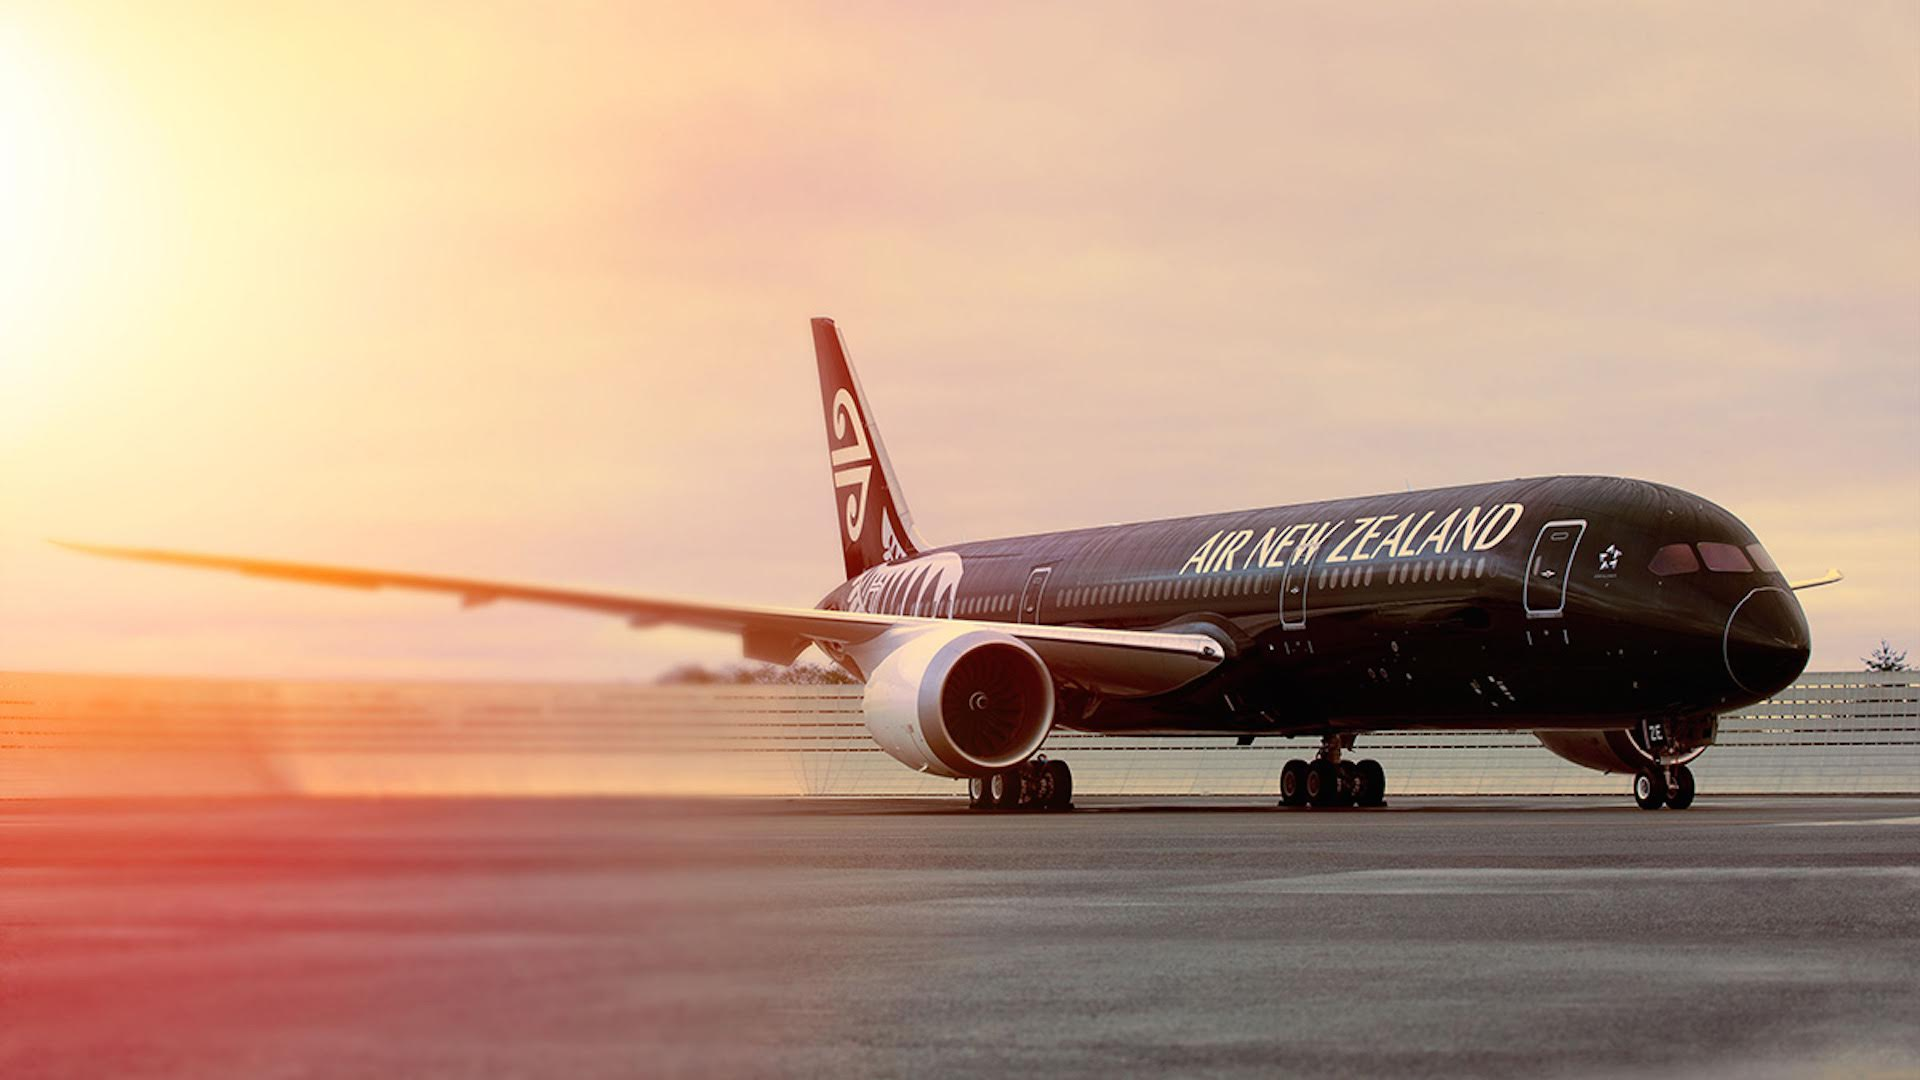 Boeing 777 Wallpaper Hd Air New Zealand Comienza Sus Vuelos Non Stop A Auckland Time